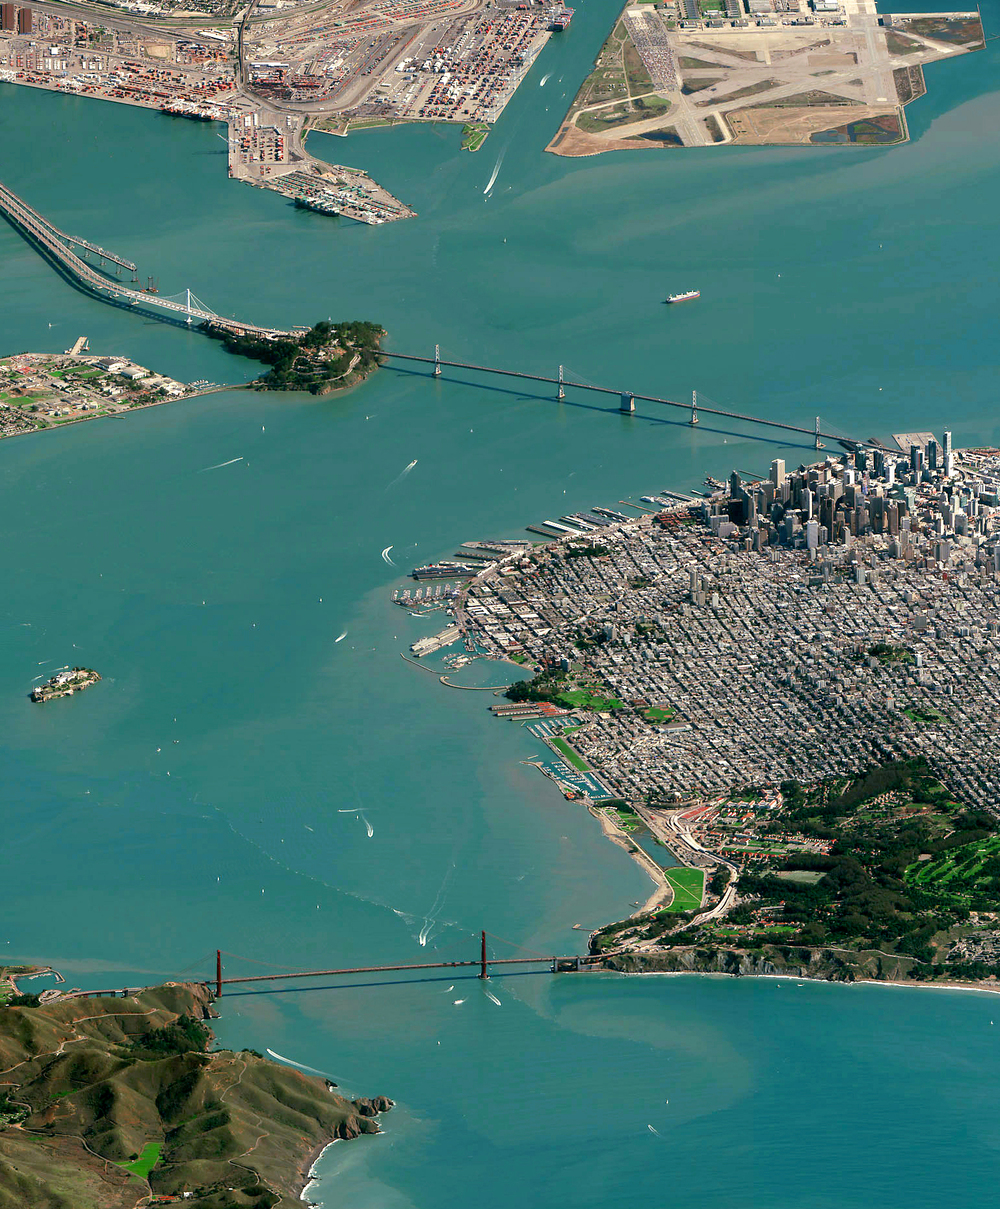 Check out this detail shot of the Golden Gate Bridge, the Bay Bridge, and downtown San Francisco from yesterday's Overview. You can also see the full print, by clicking on the link here: http://www.dailyoverview.com/printshop/sflowangle